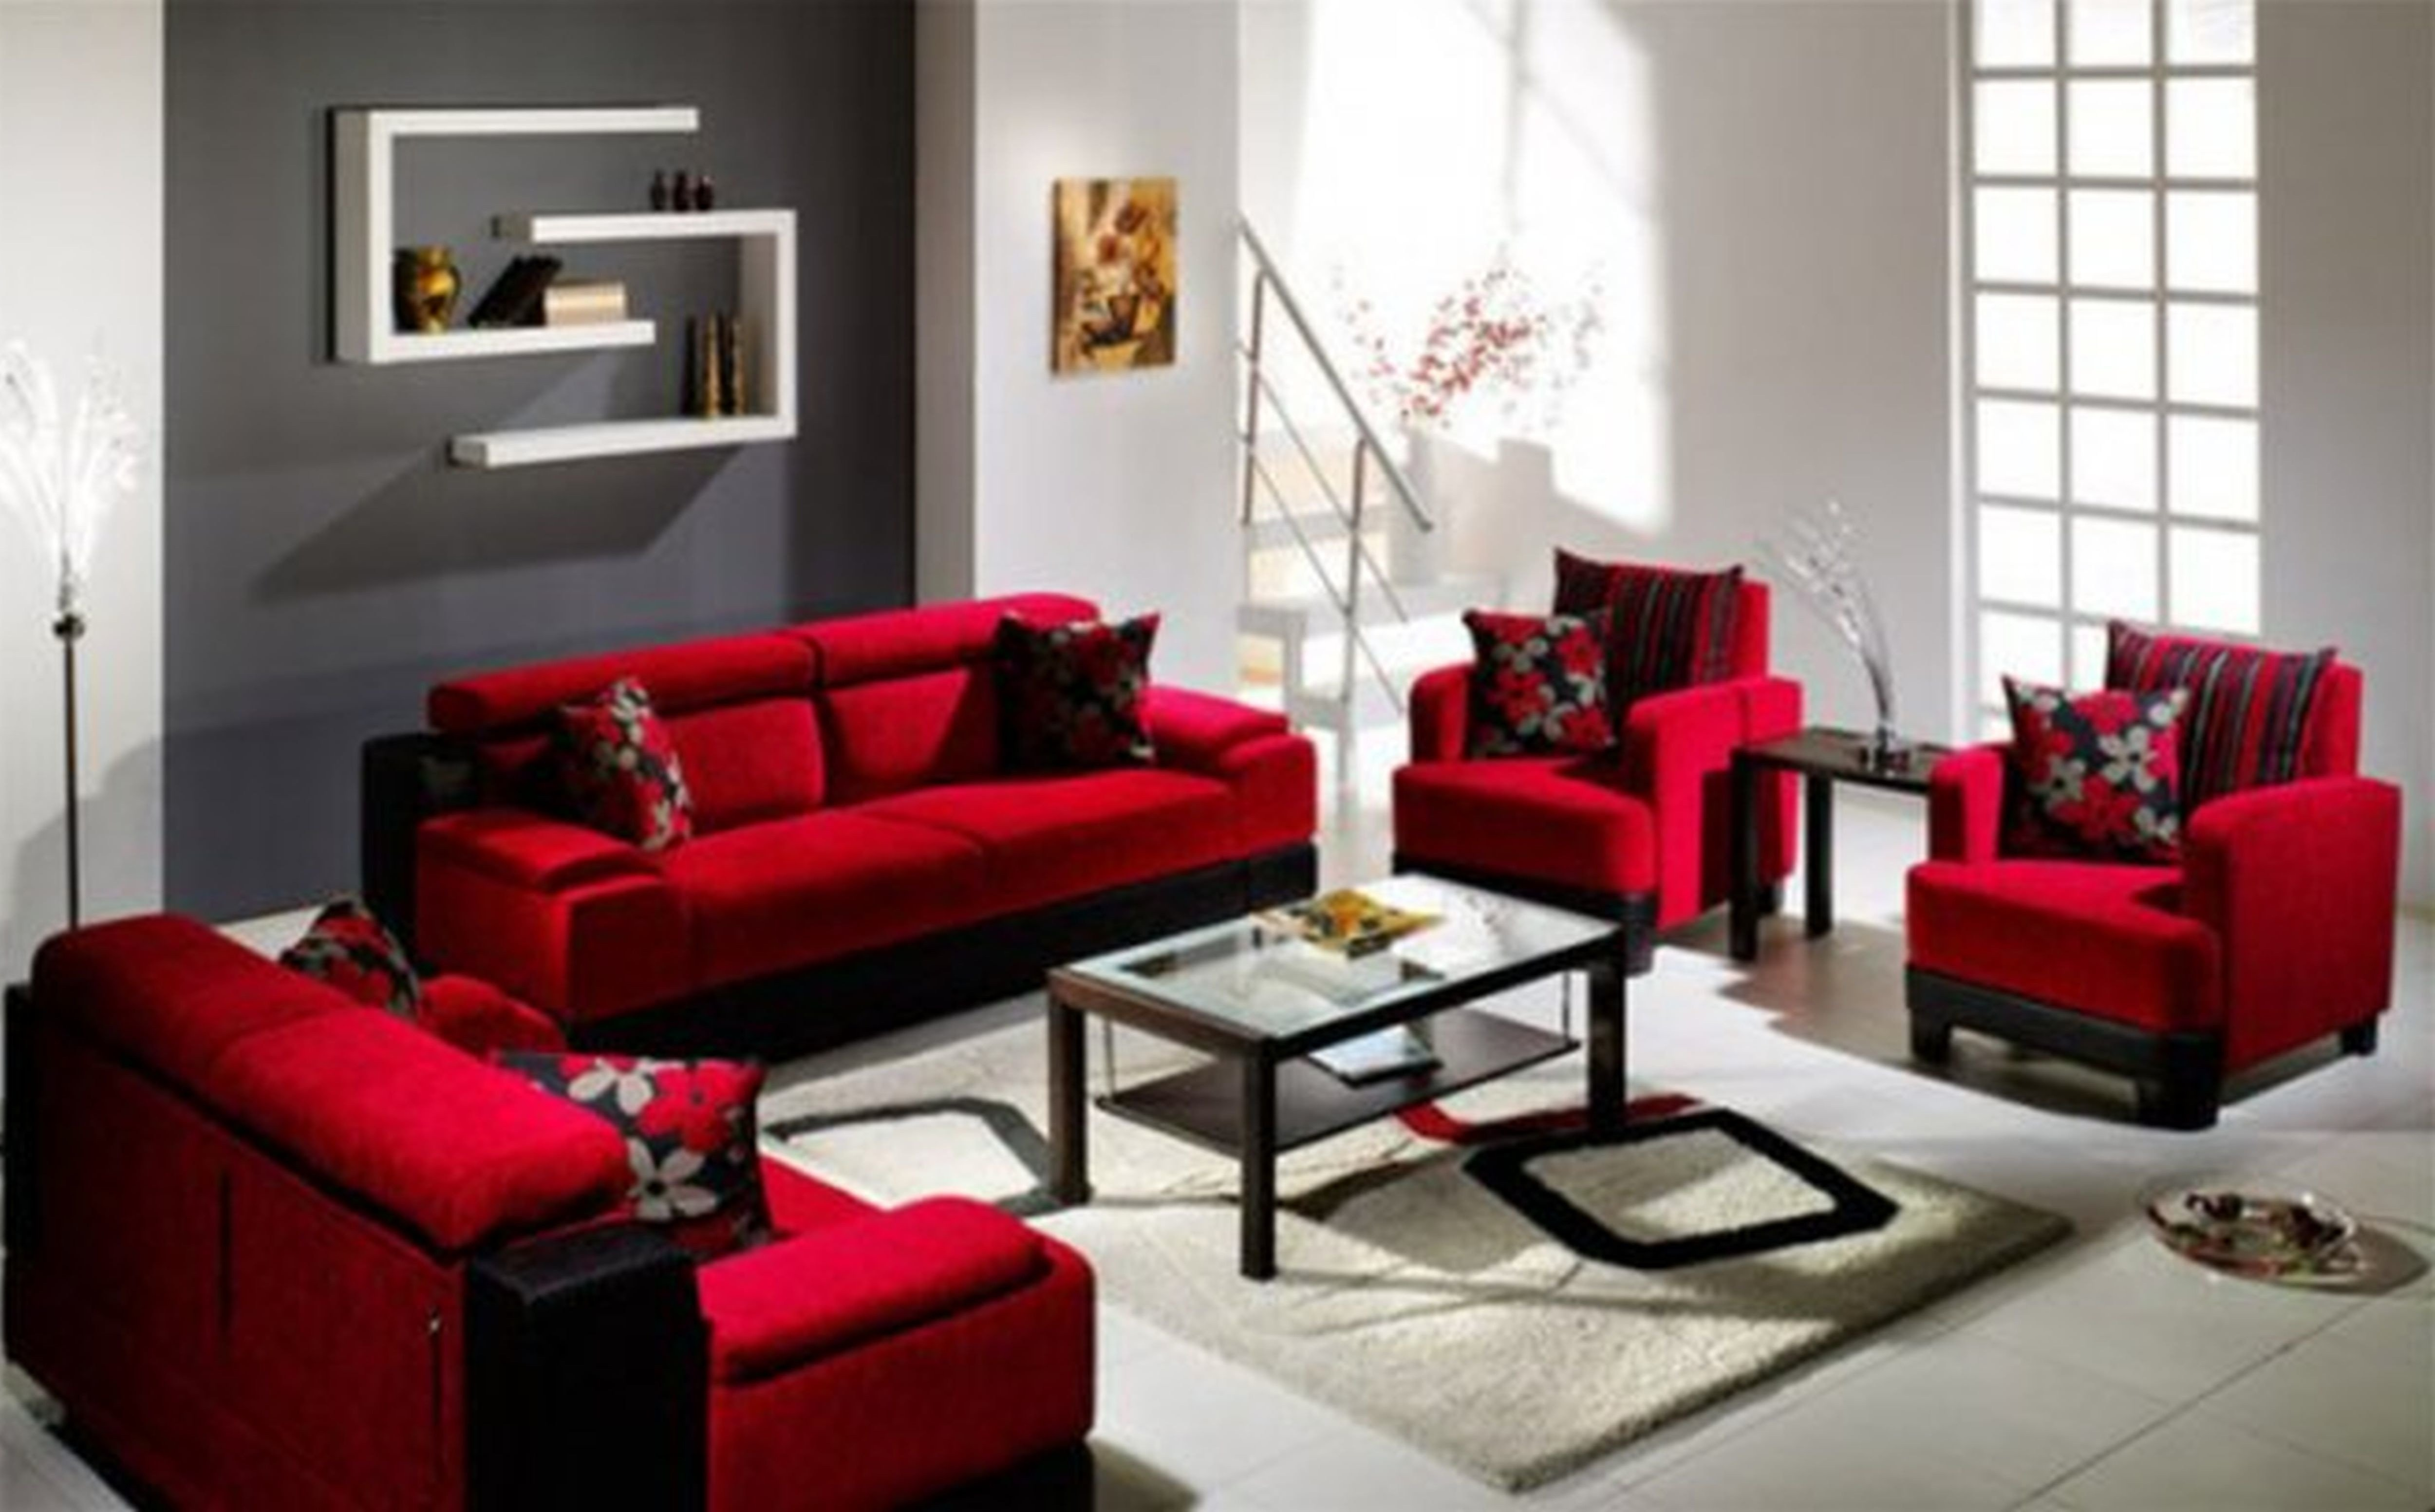 Red Couch Living Room Decor Luxury 1000 Ideas About Red Couch Decorating Pinterest Red Couches Red Helena source